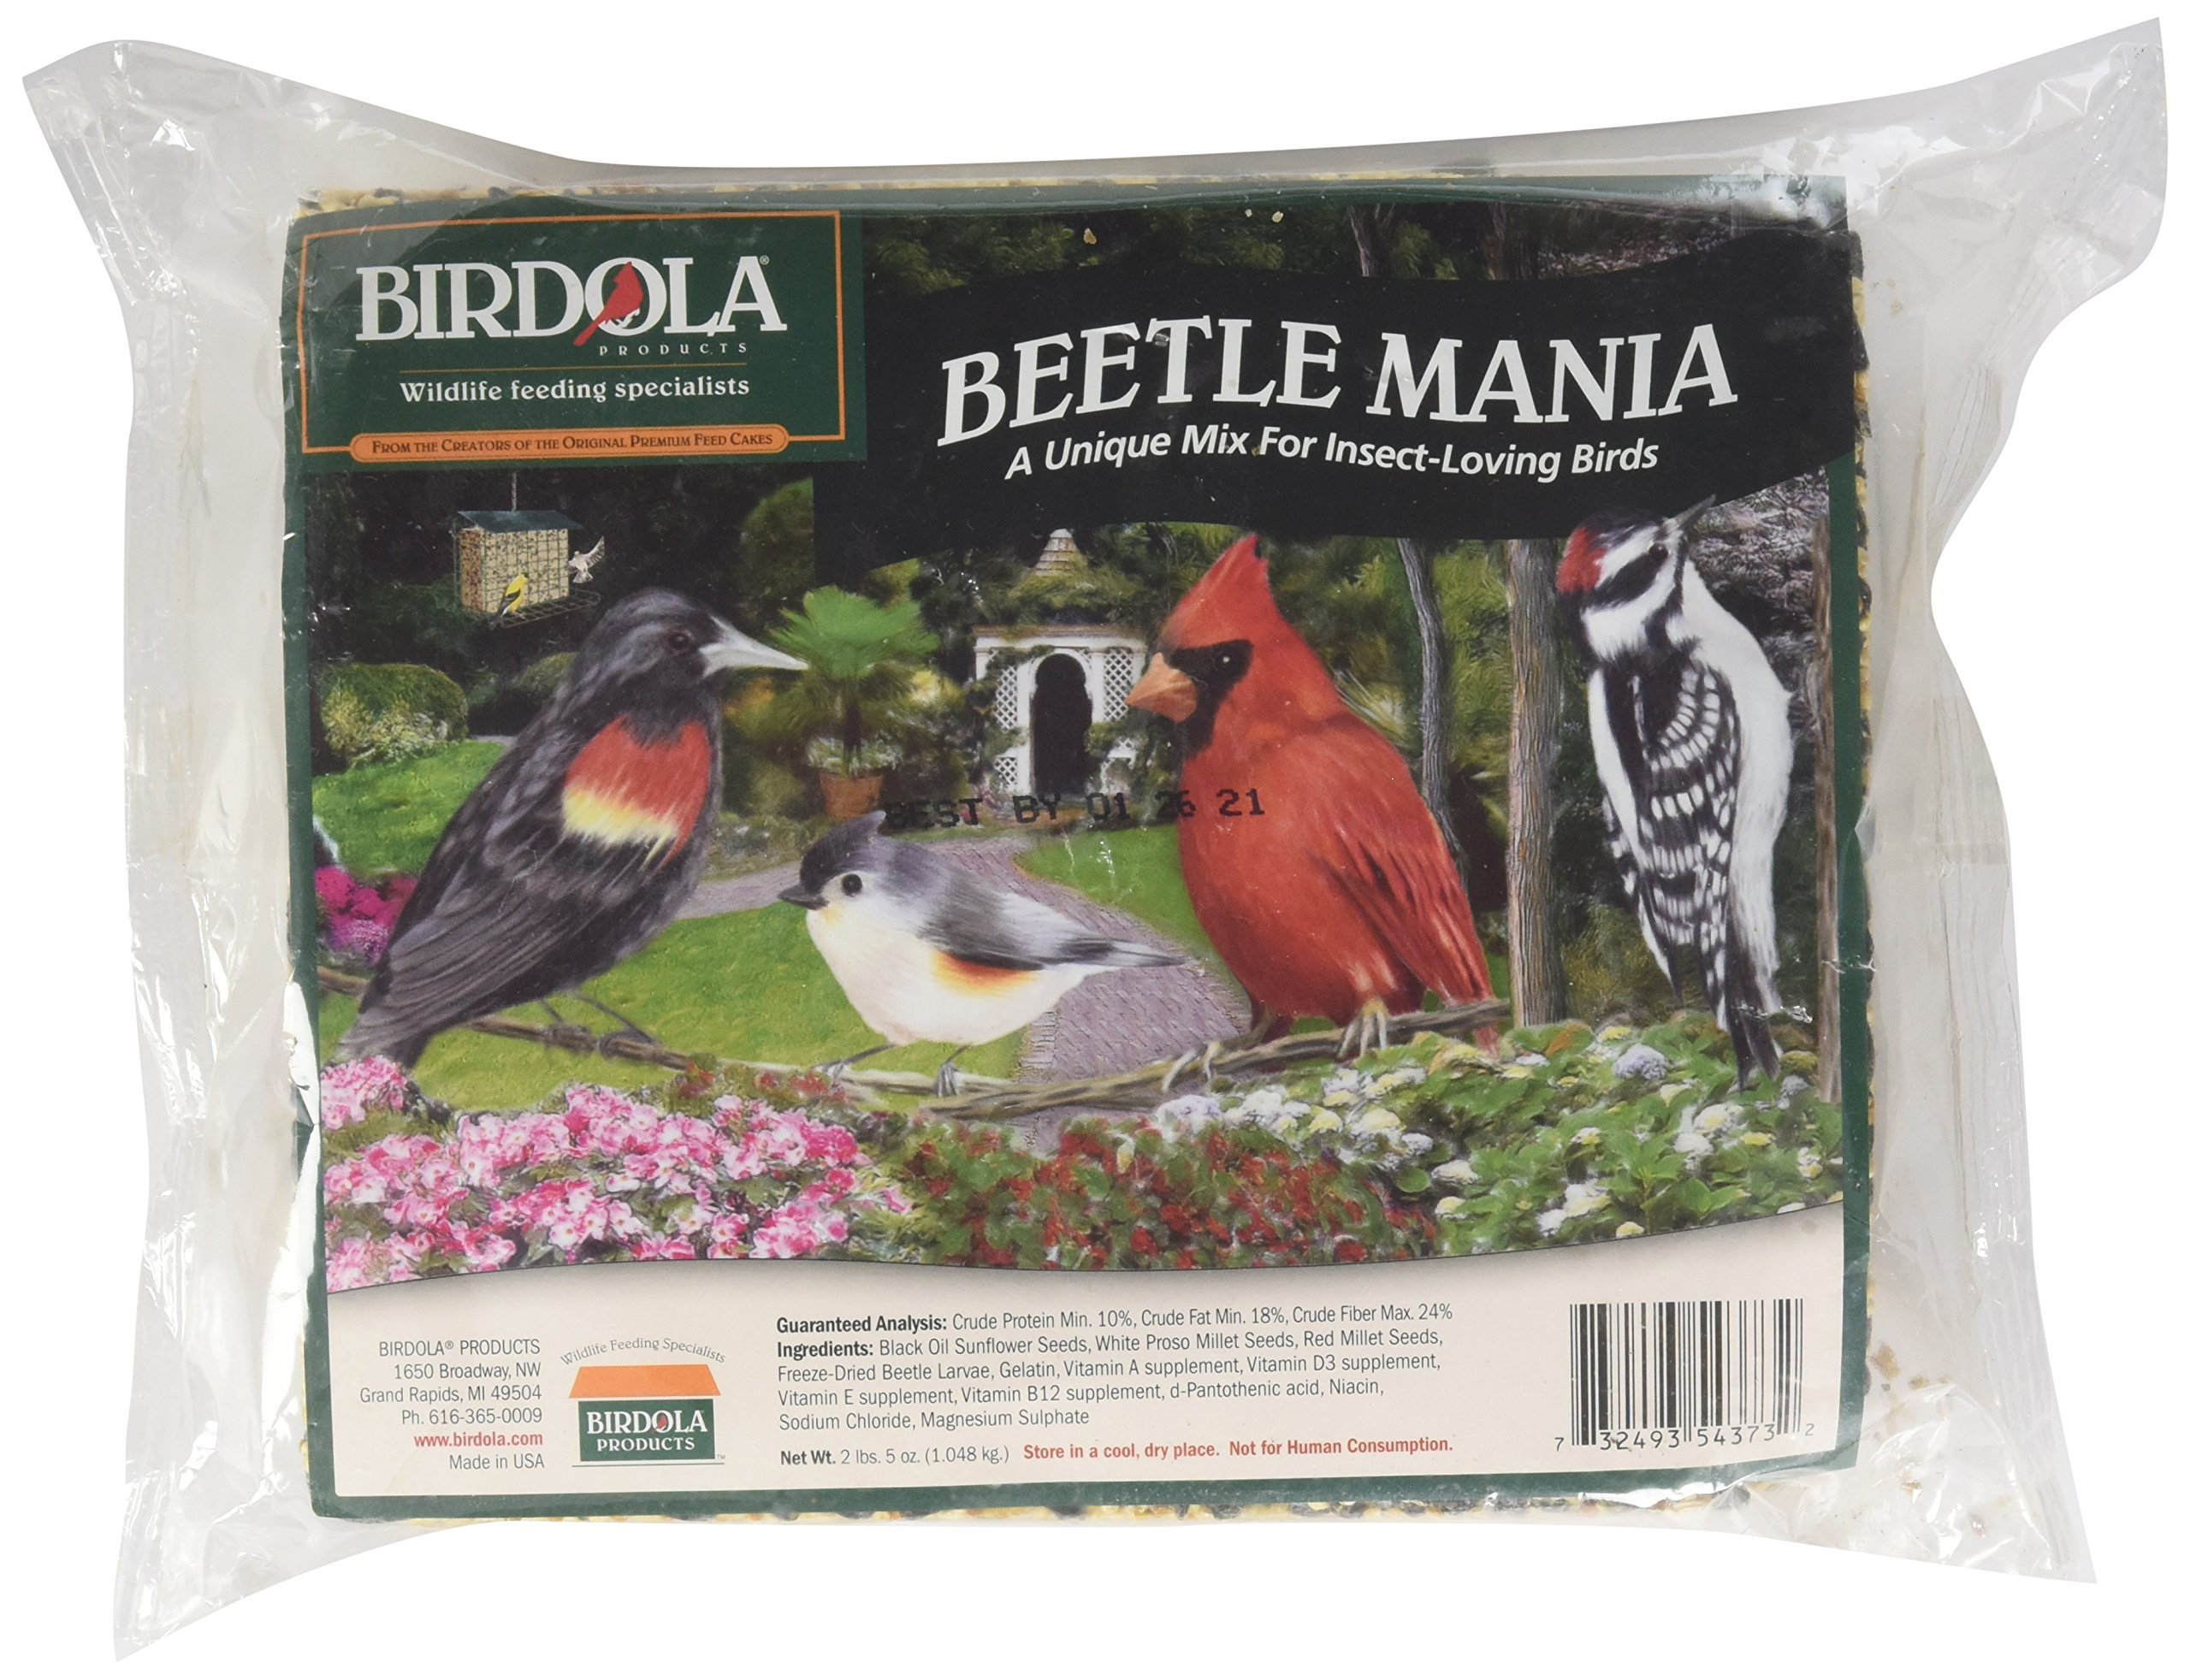 Birdola Beetle Mania Seed Cake 2.2 Pounds, For Insect-Loving Wild Birds